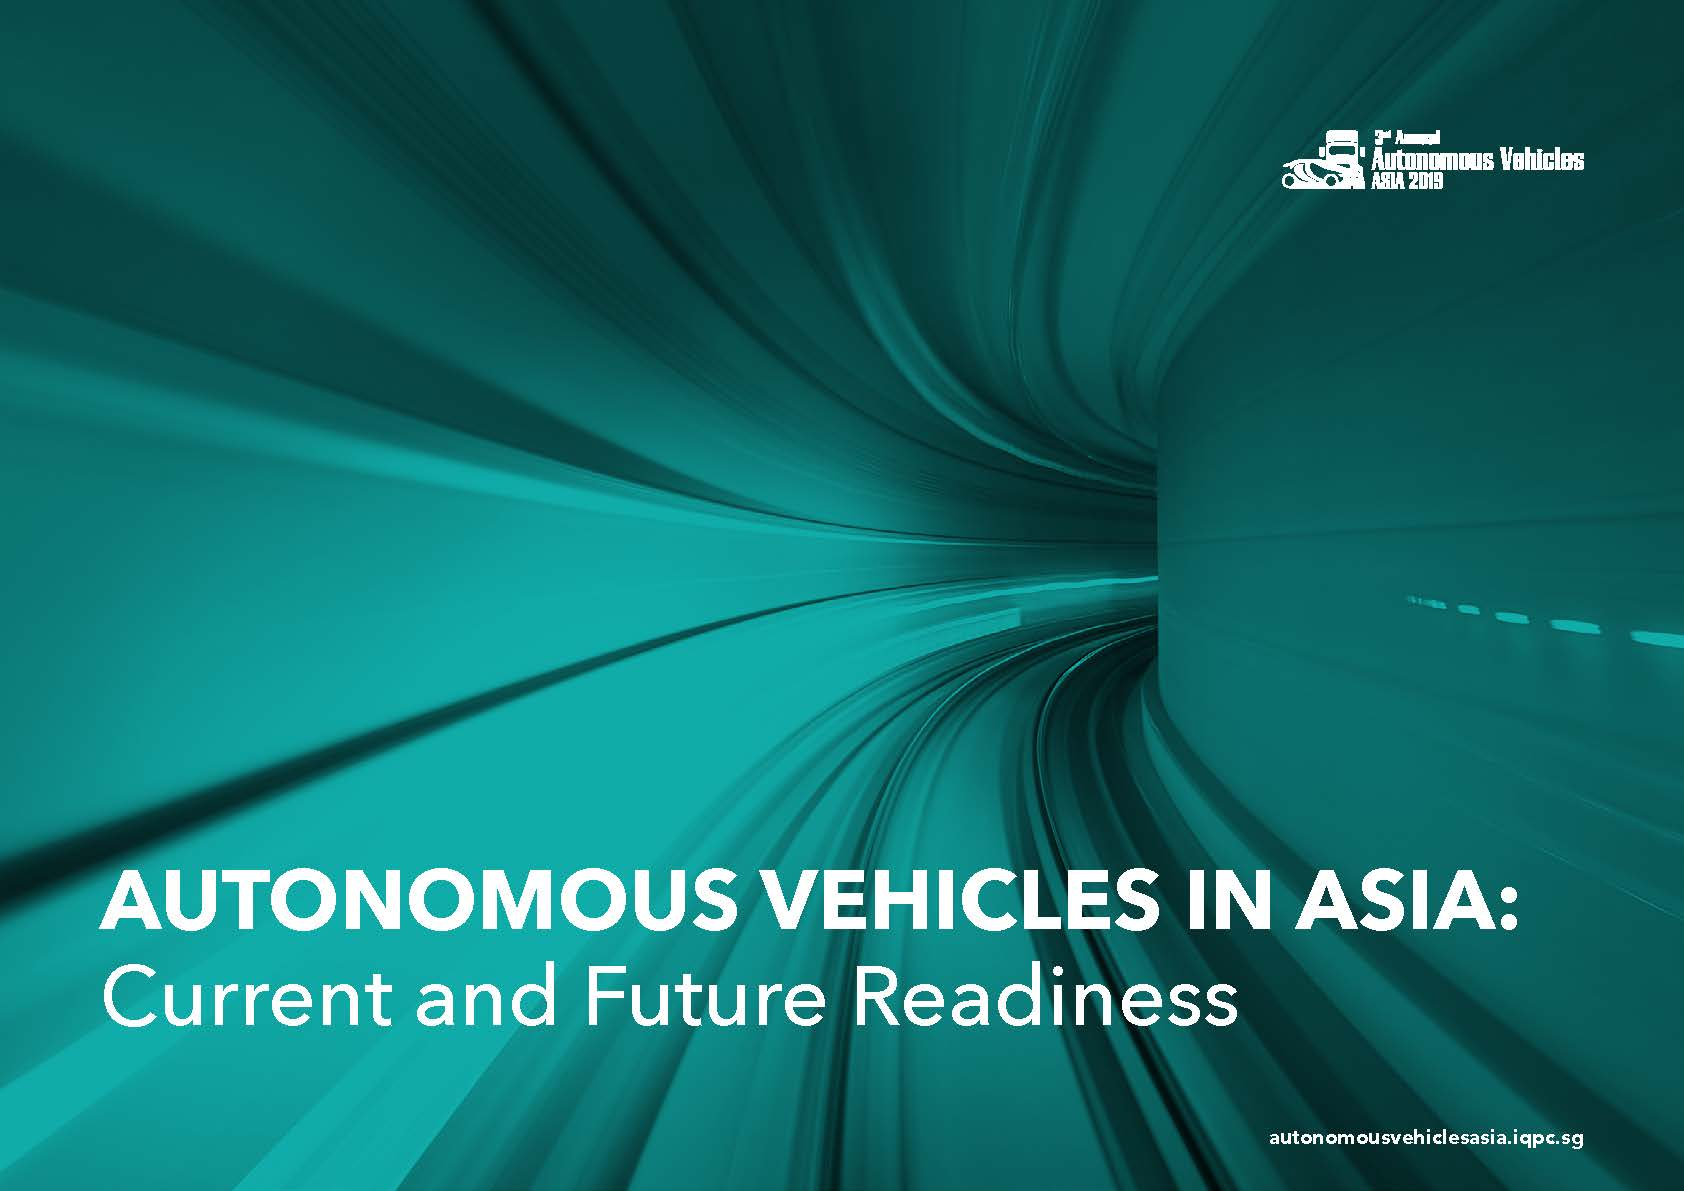 AUTONOMOUS VEHICLES IN ASIA: Current and Future Readiness